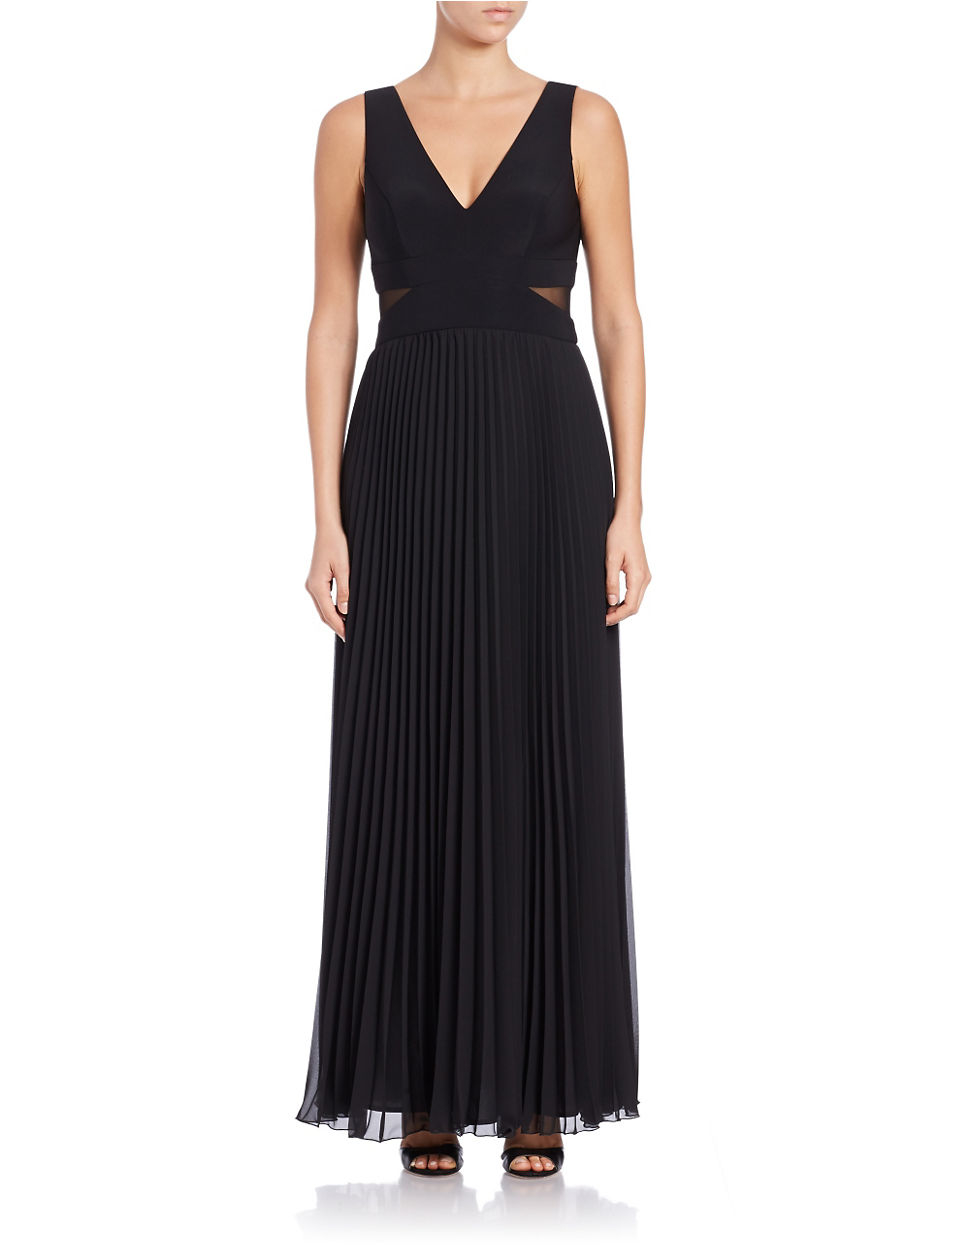 Lyst - Xscape Pleated V-neck Gown in Black